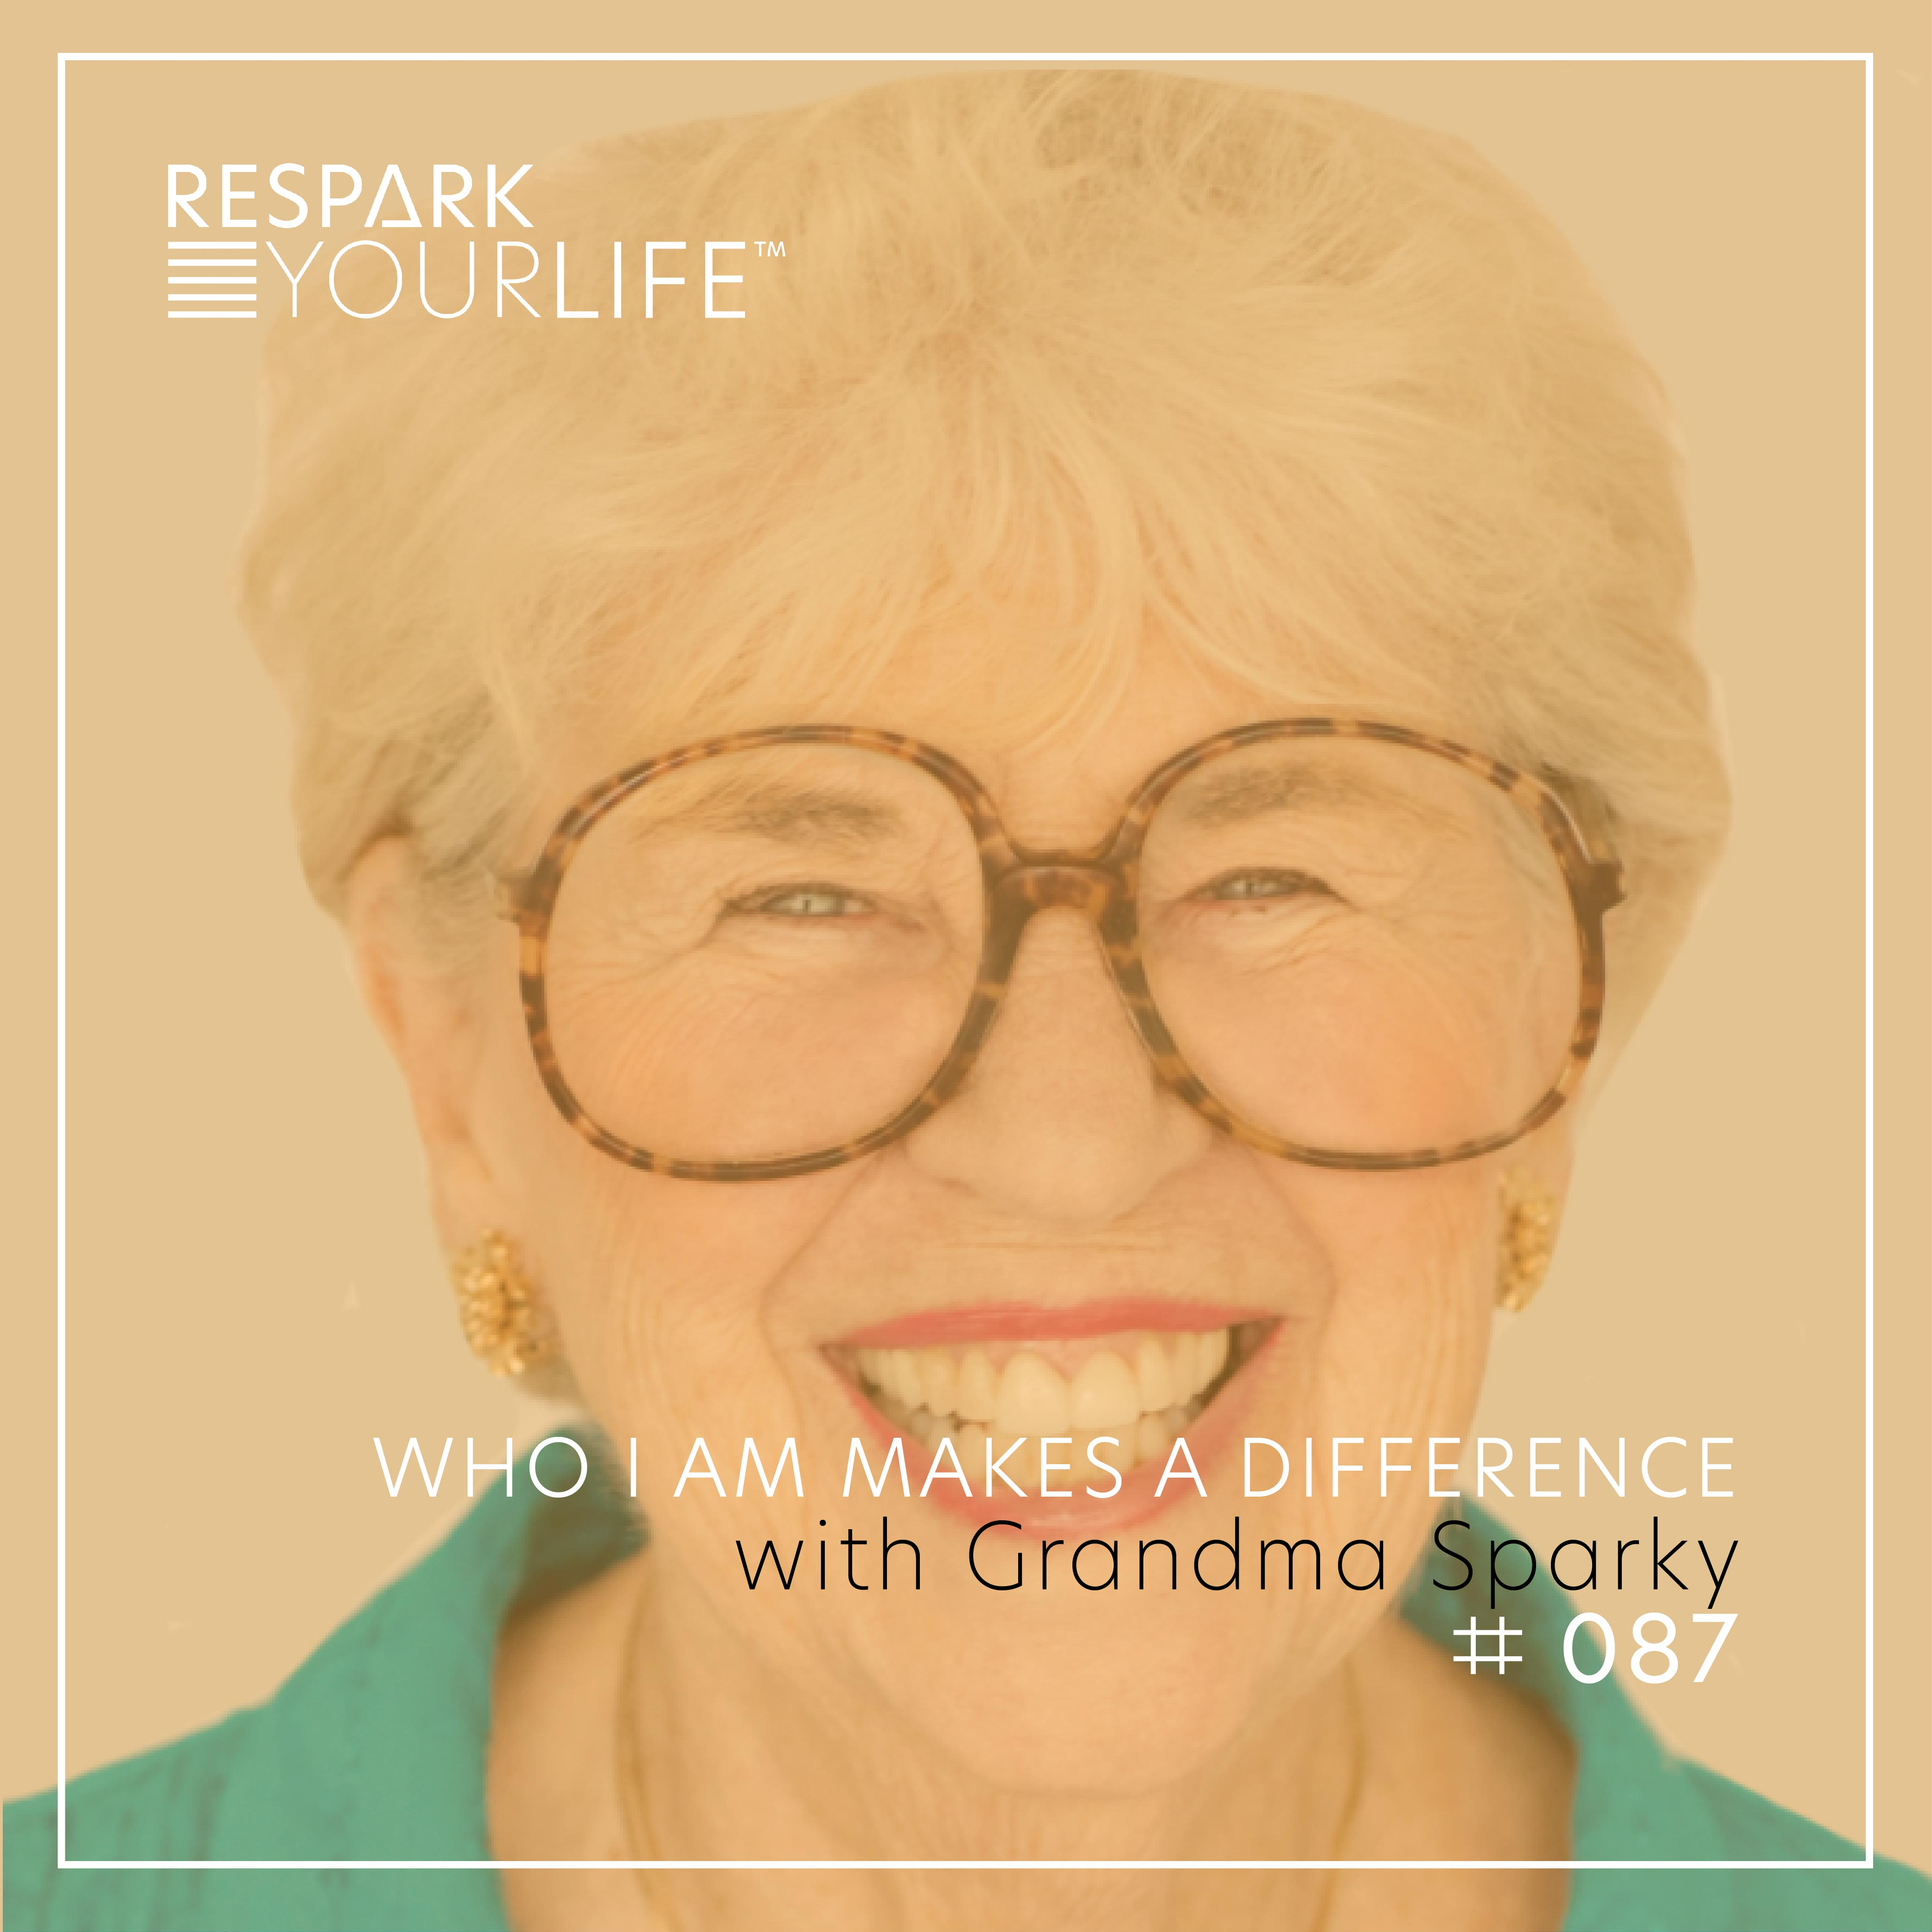 Who I am Makes a Difference with Grandma Sparky